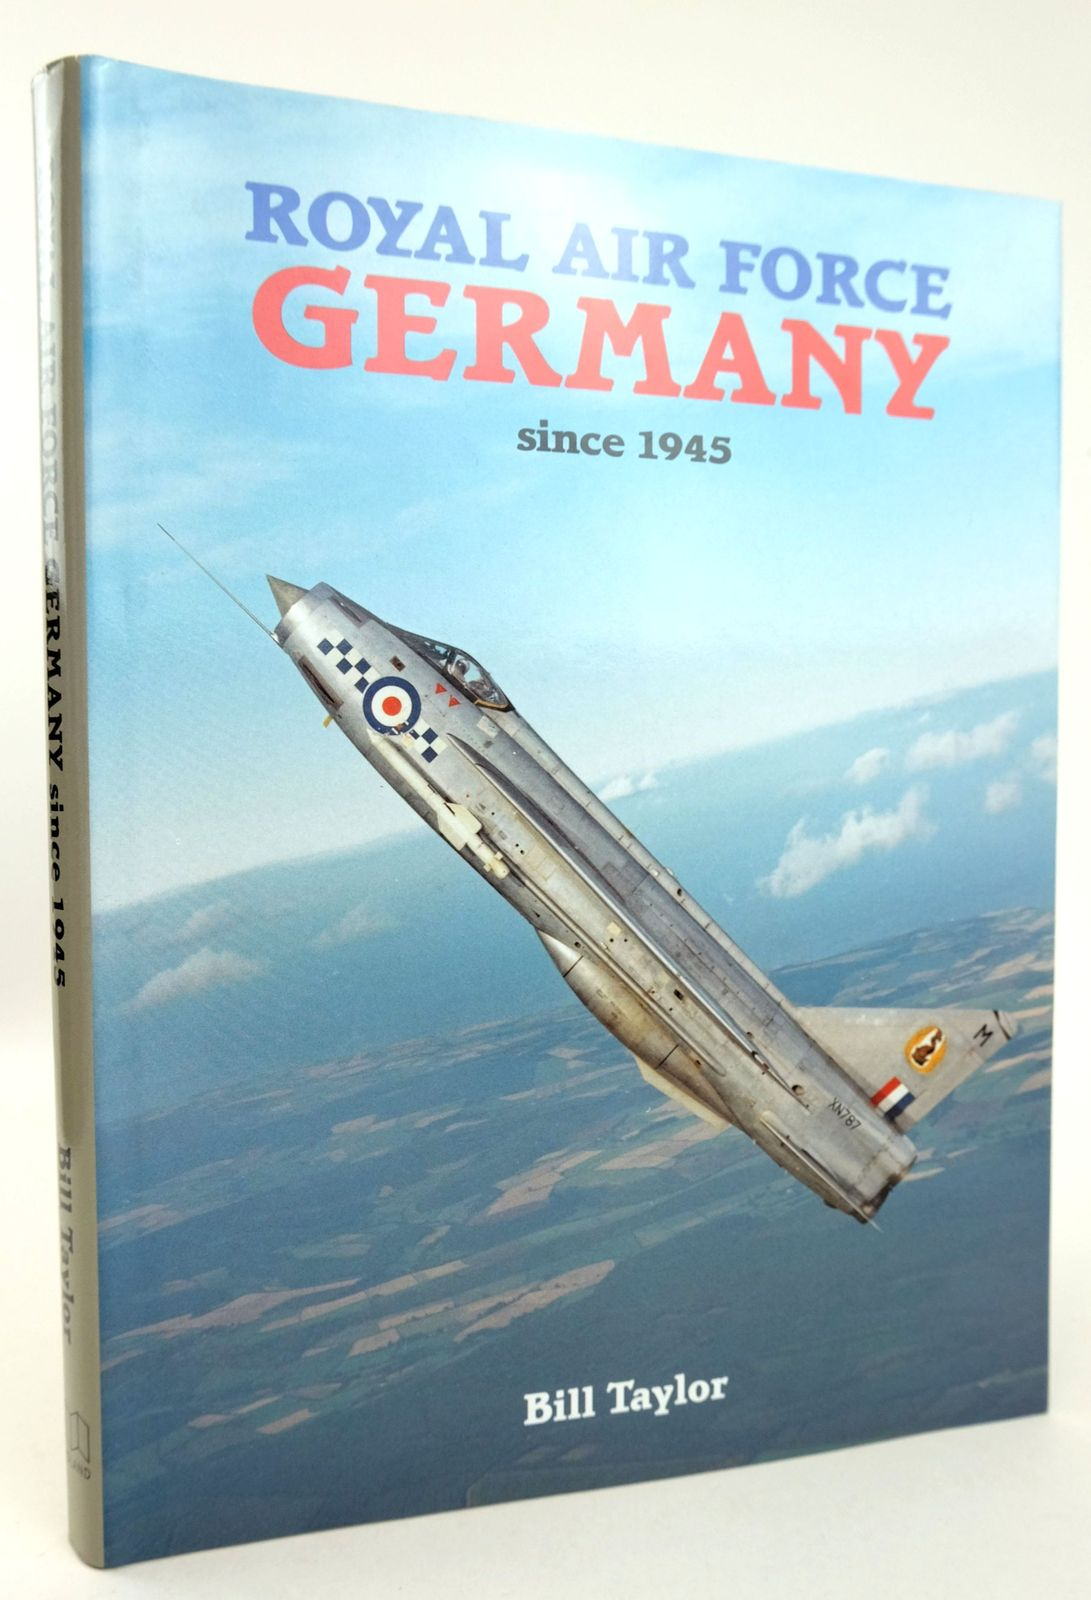 Photo of ROYAL AIR FORCE GERMANY SINCE 1945 written by Taylor, Bill published by Midland Publishing (STOCK CODE: 1819146)  for sale by Stella & Rose's Books